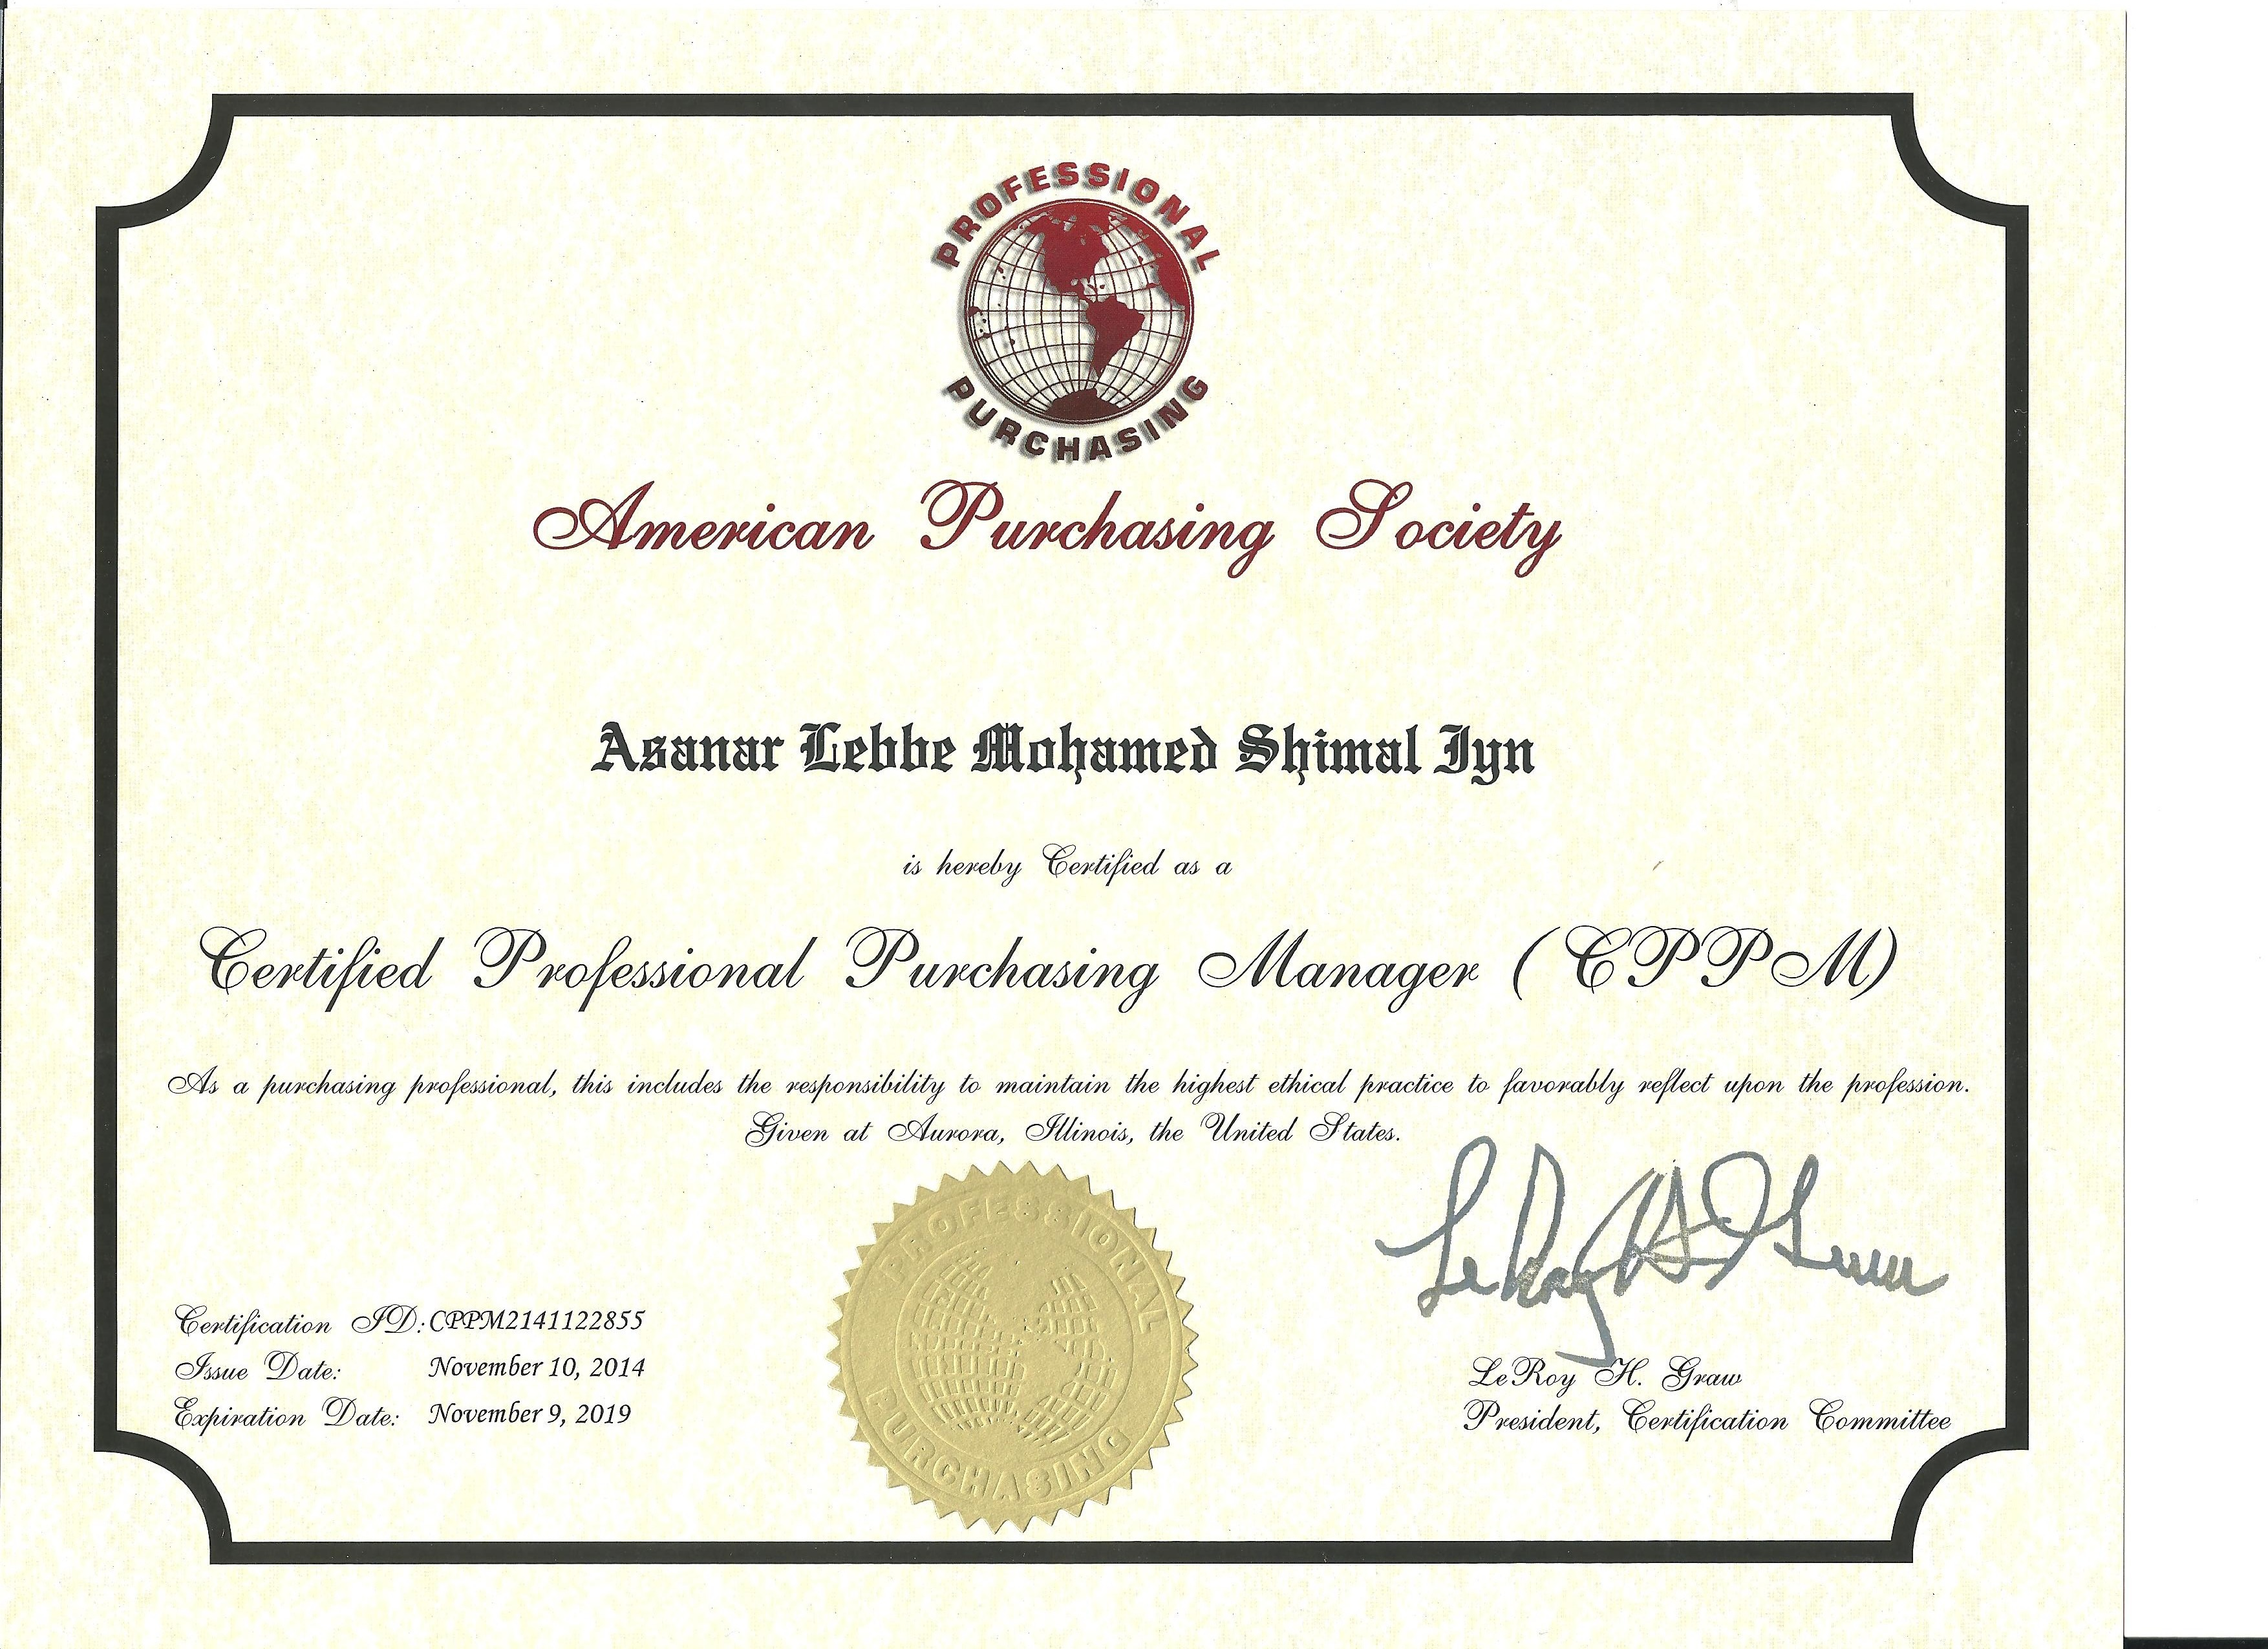 Asanar lebbe mohamed shimal iyn bayt cppm certified professional purchasing manager certificate xflitez Image collections